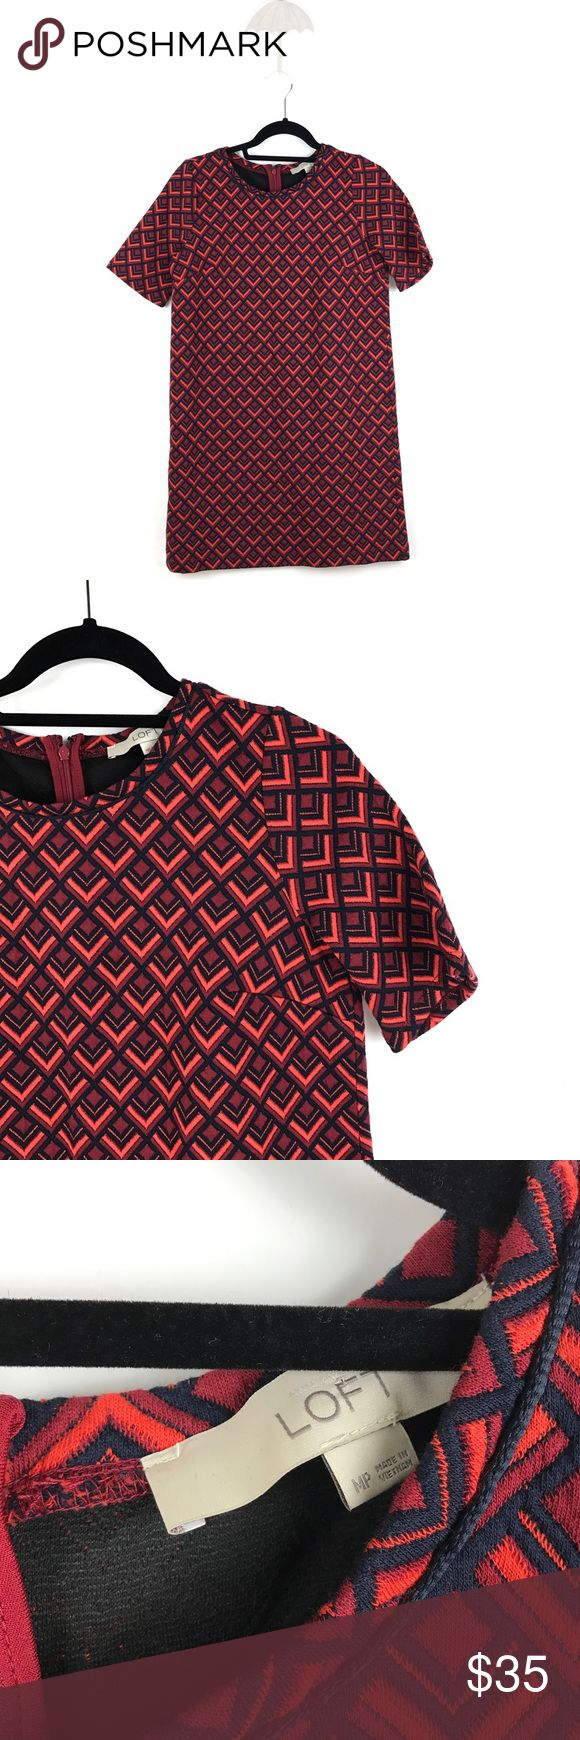 """Loft short sleeve shift dress geometric MP 510 Loft Short Sleeve Shift Dress Geometric Print Red Women's Petite Size MP 510  Measurements: Bust: 19"""" Flat Across Waist: 19"""" Flat Across Length: 33.5"""" Long  In good preowned condition with no known flaws and light overall wear. LOFT Dresses Mini"""